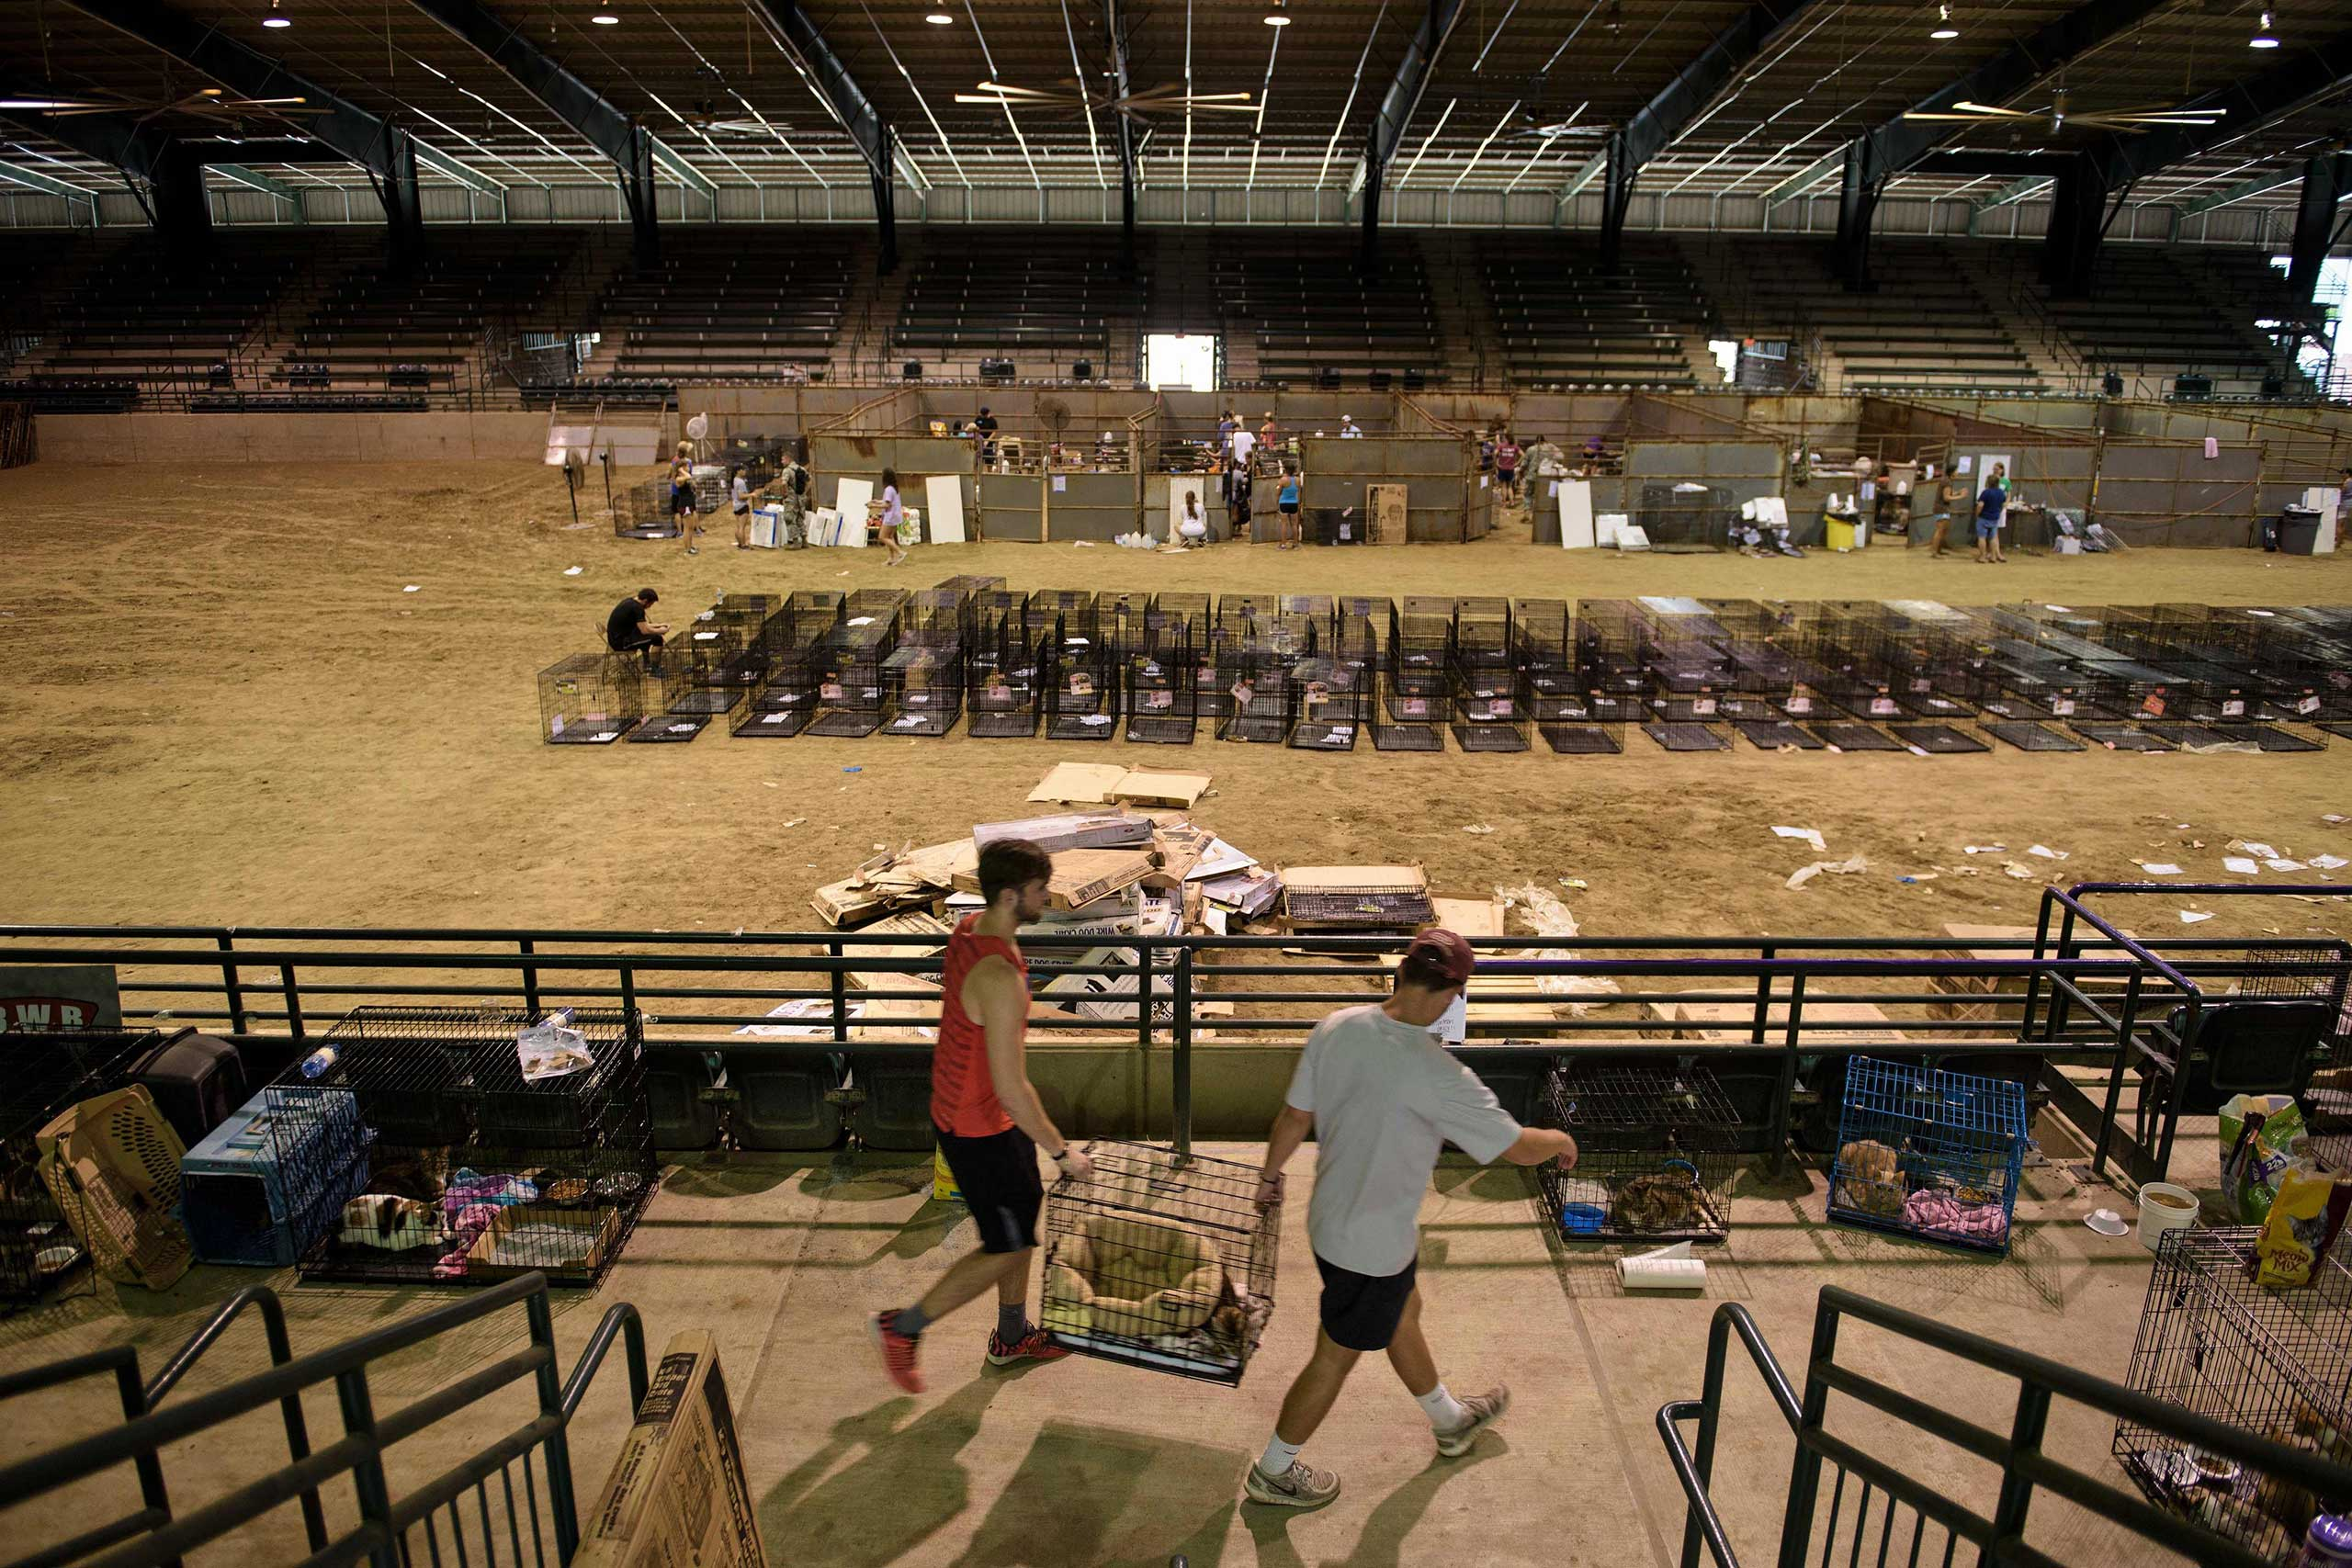 Volunteers move cages at a temporary animal shelter inside the Lamar Dixon Expo Center near a flood victims' shelter after flooding in Gonzales, La., on Aug. 16, 2016.